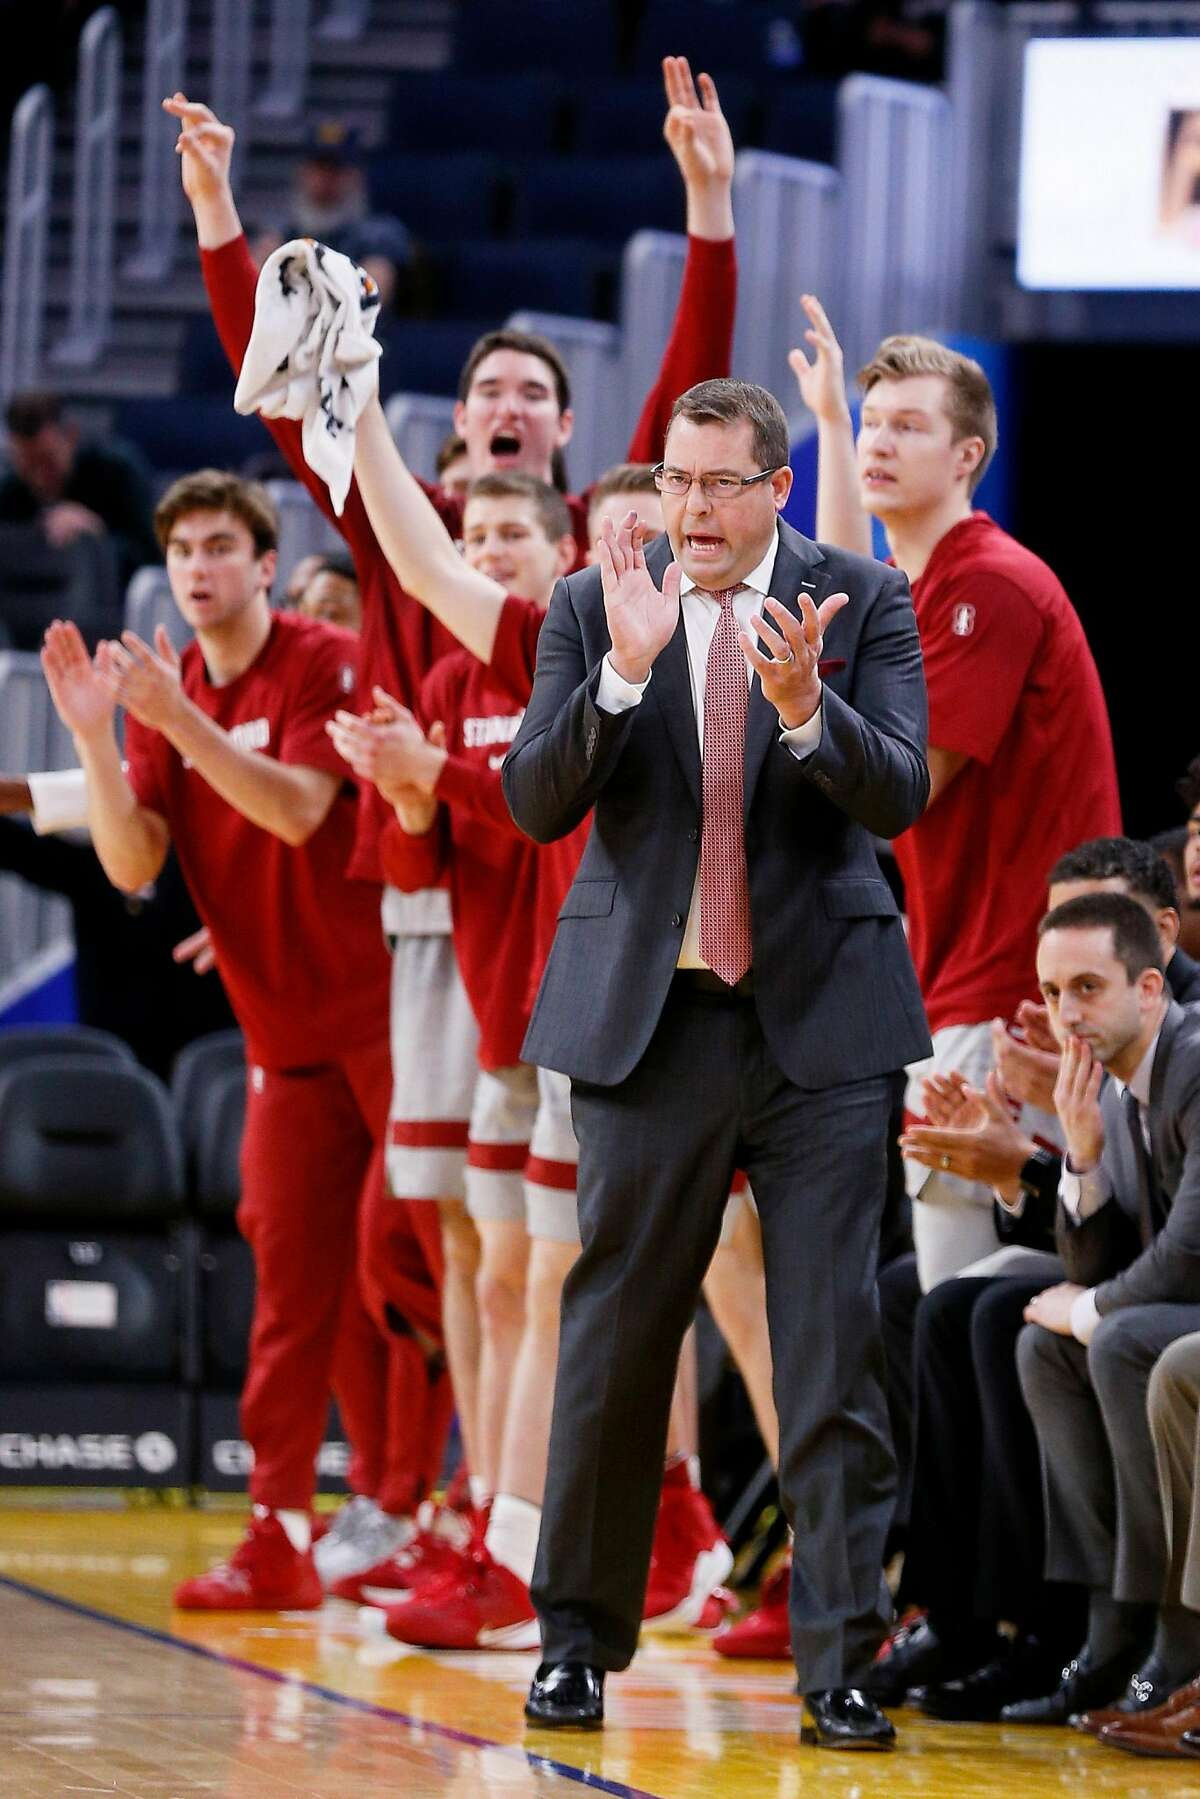 Stanford Cardinal head coach Jerod Haase and the bench cheer as the Cardinal score against the San Diego Toreros in Session 1 of the Al Attles Classic at Chase Center on Saturday, Dec. 21, 2019, in San Francisco, Calif.